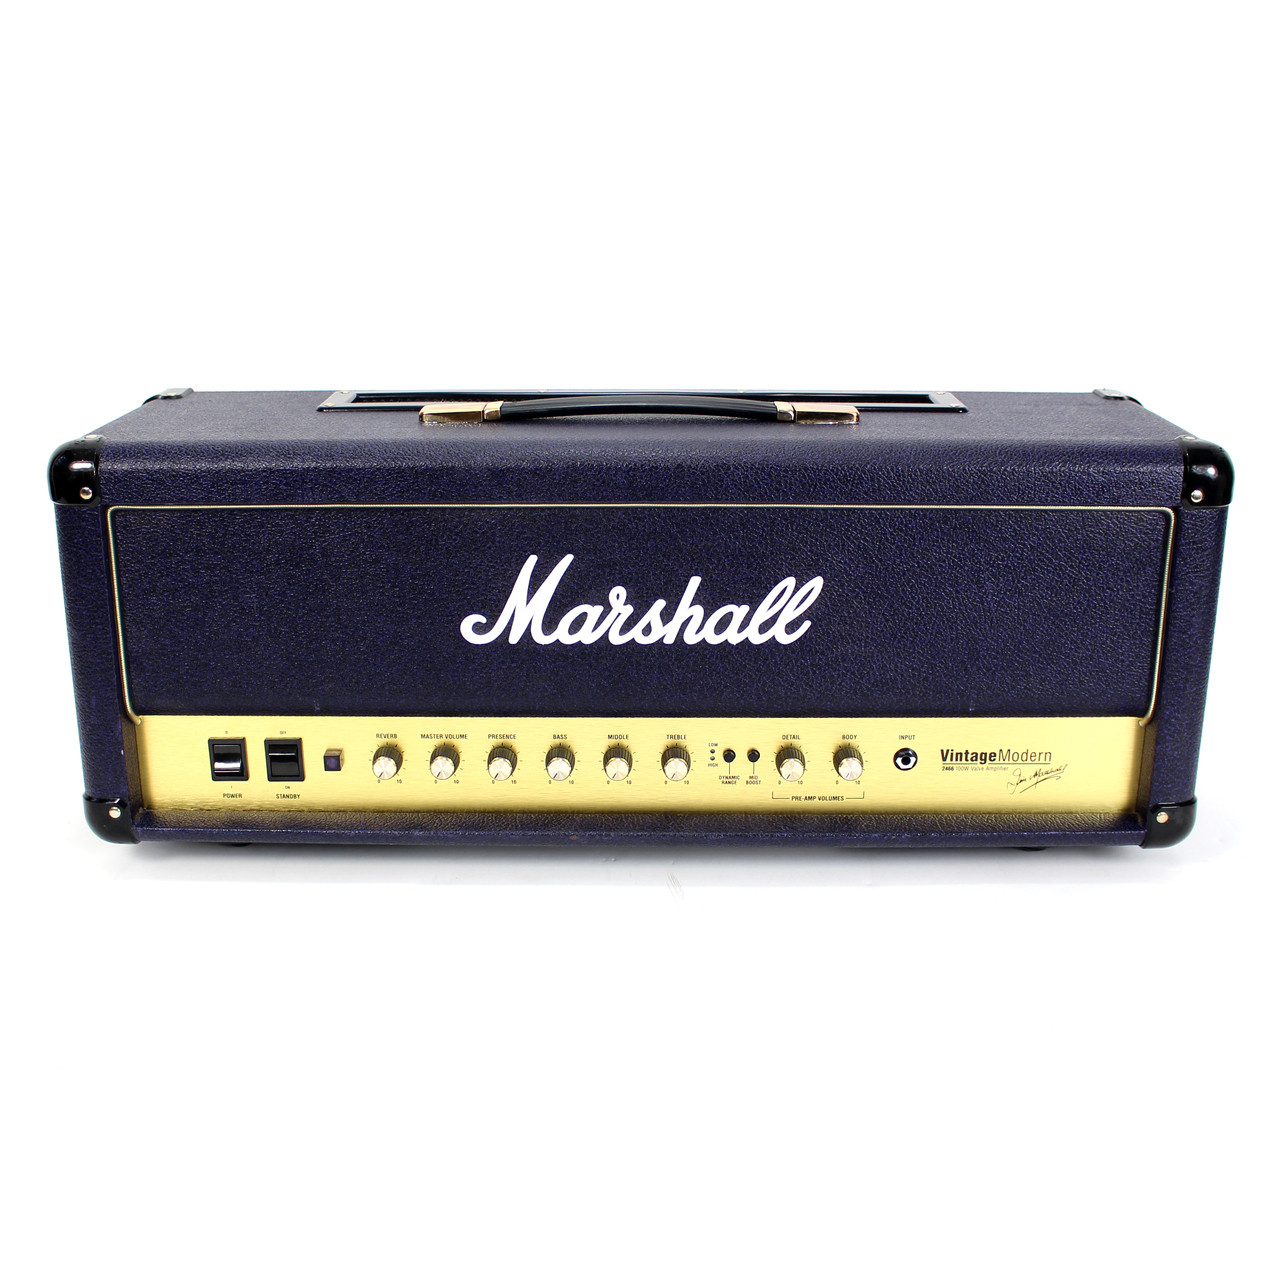 2007 Marshall Vintage Modern Model 2466 100W Tube Head